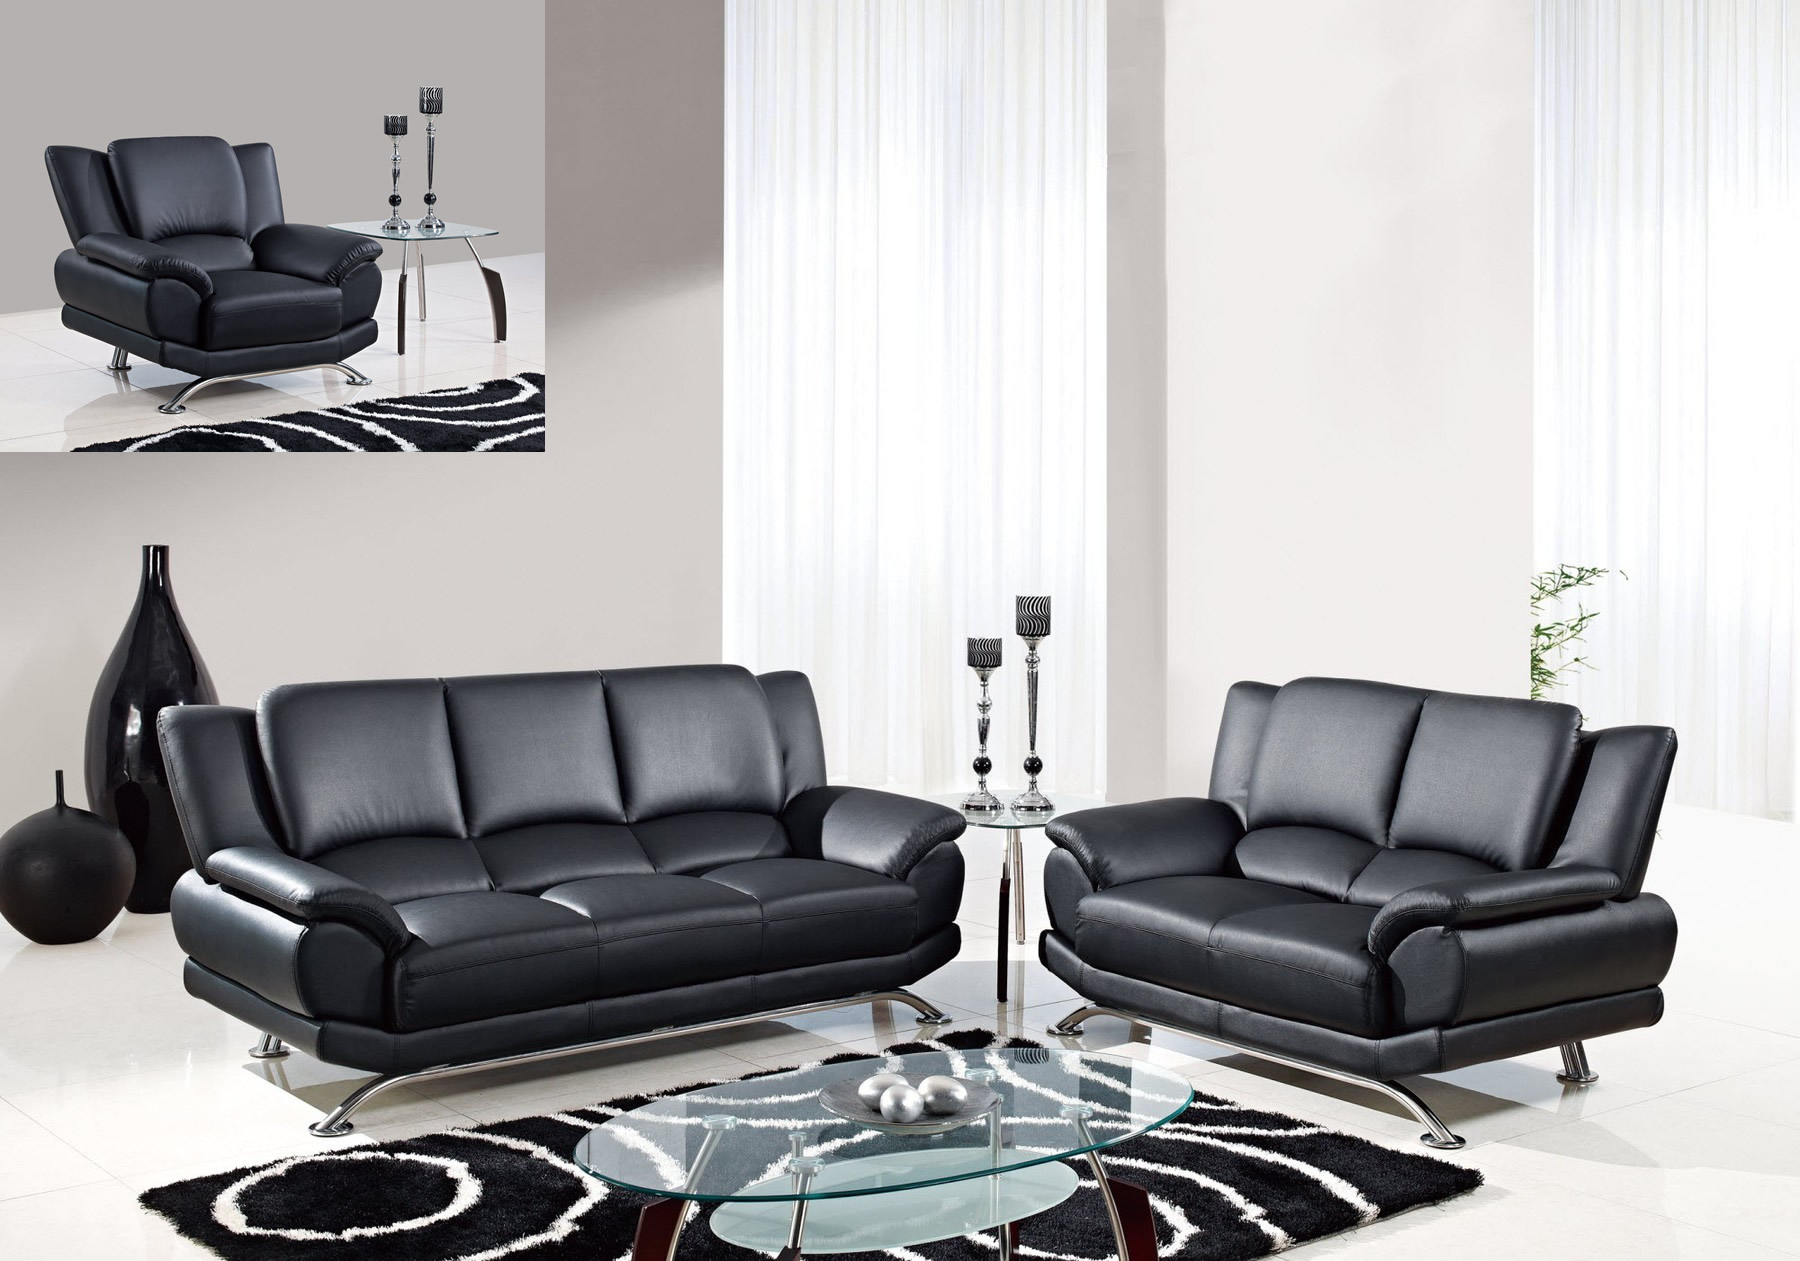 U9908 living room set red buy online at best price sohomod - Living room sets for cheap prices ...